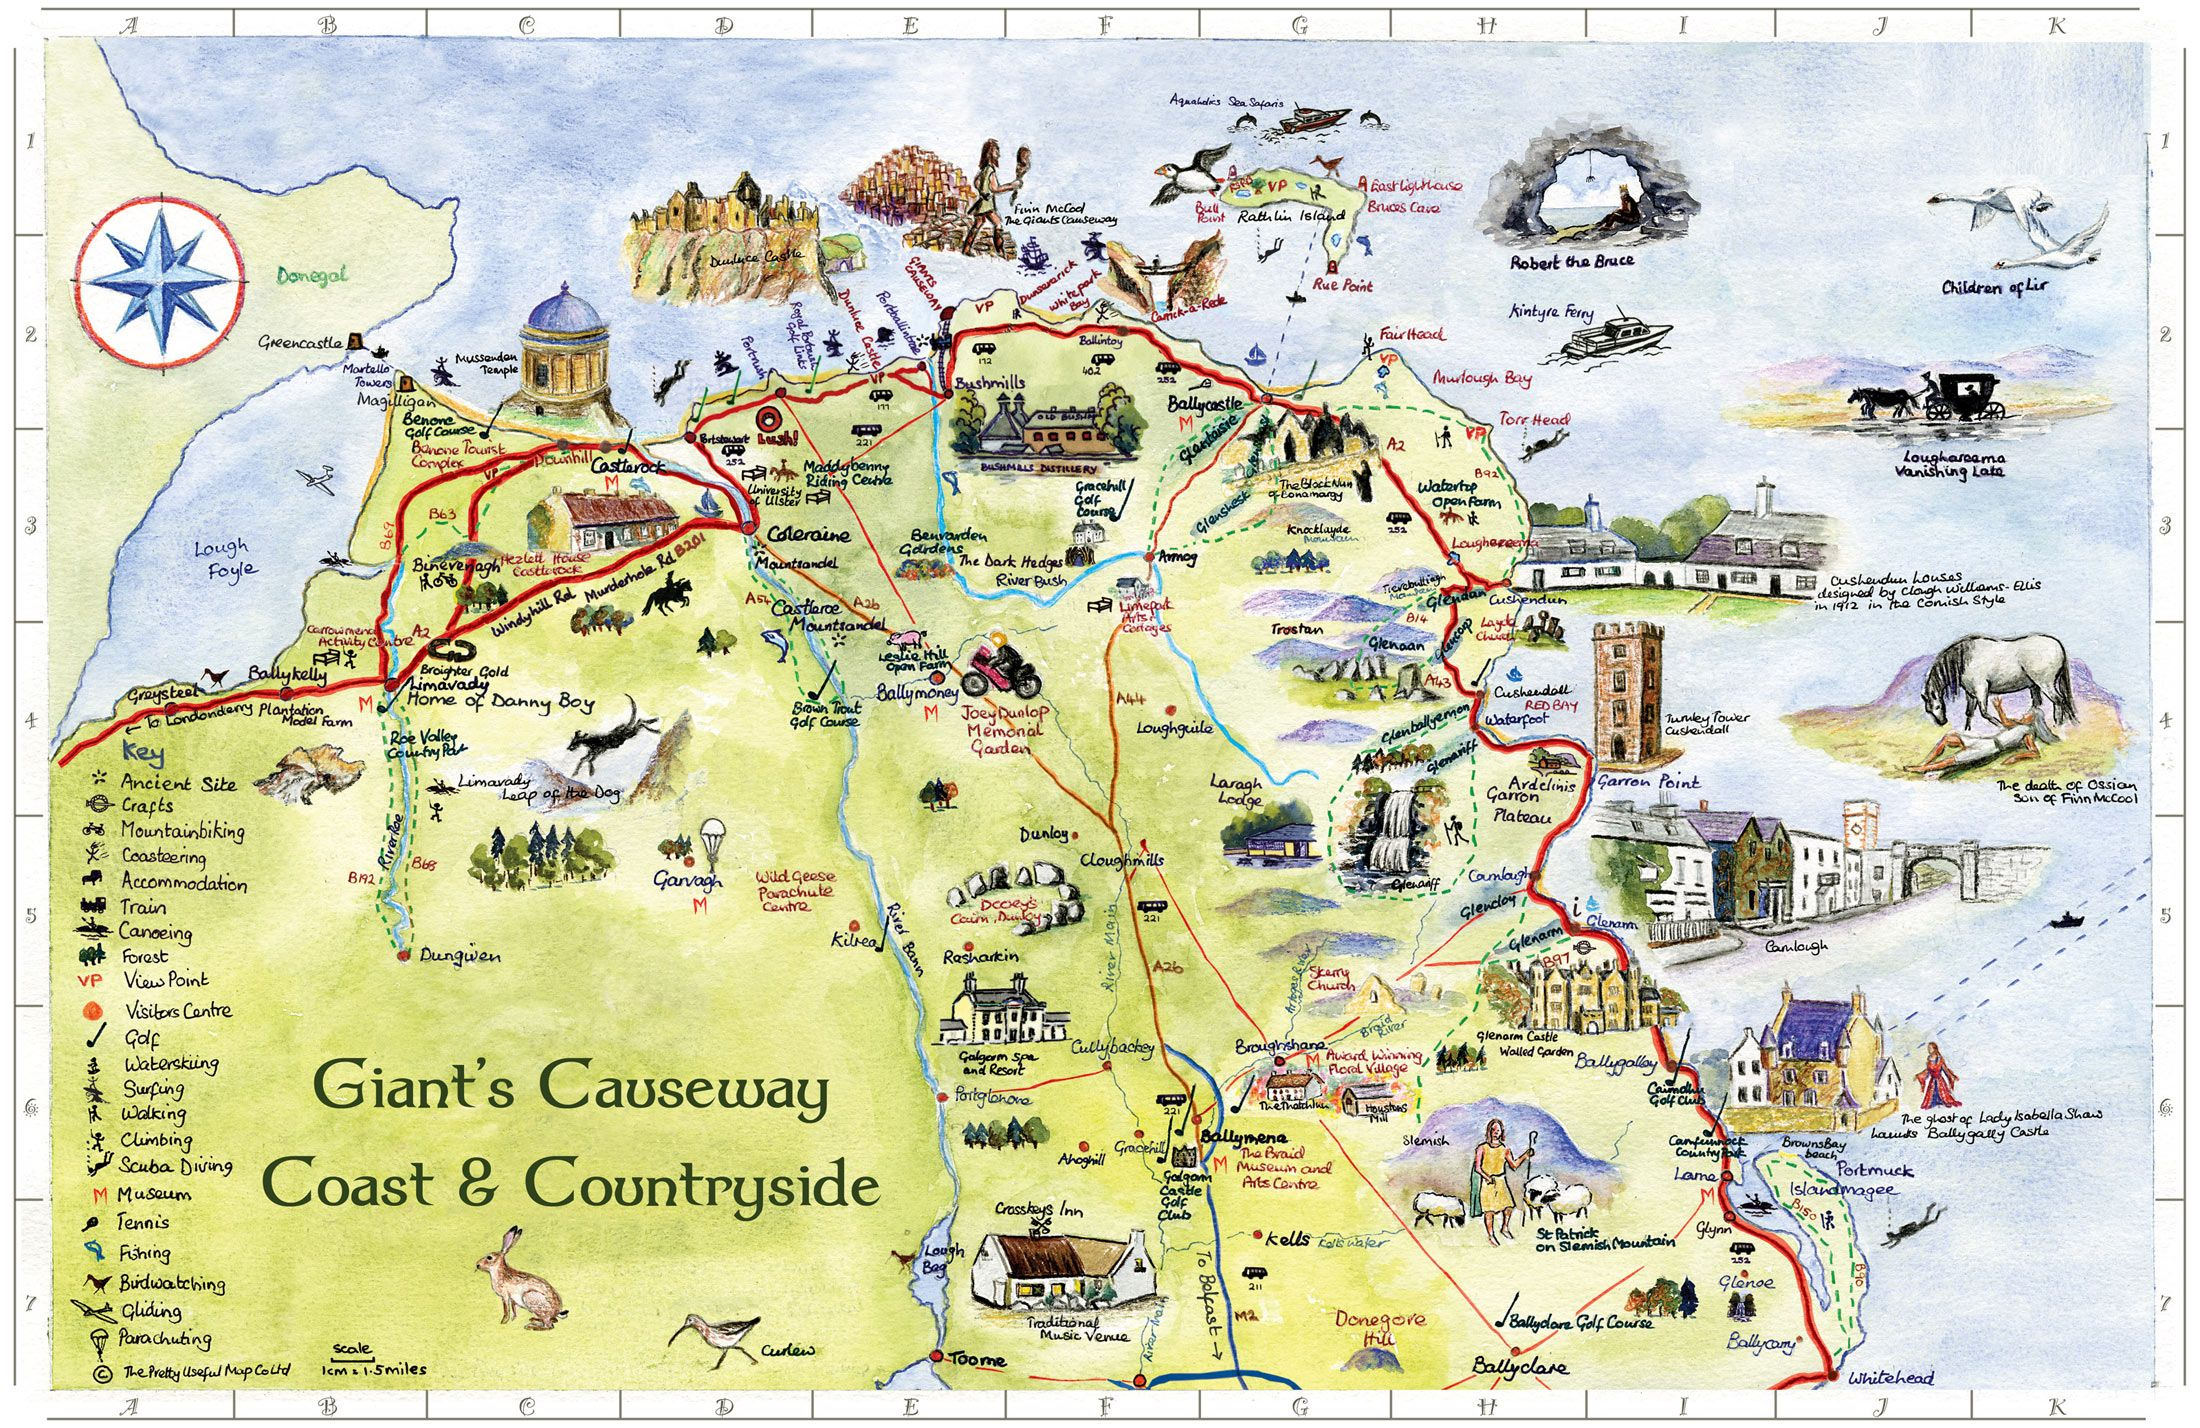 Map Of Ireland Giants Causeway.Giant S Causeway Coast Countryside Map Ireland In 2019 Map